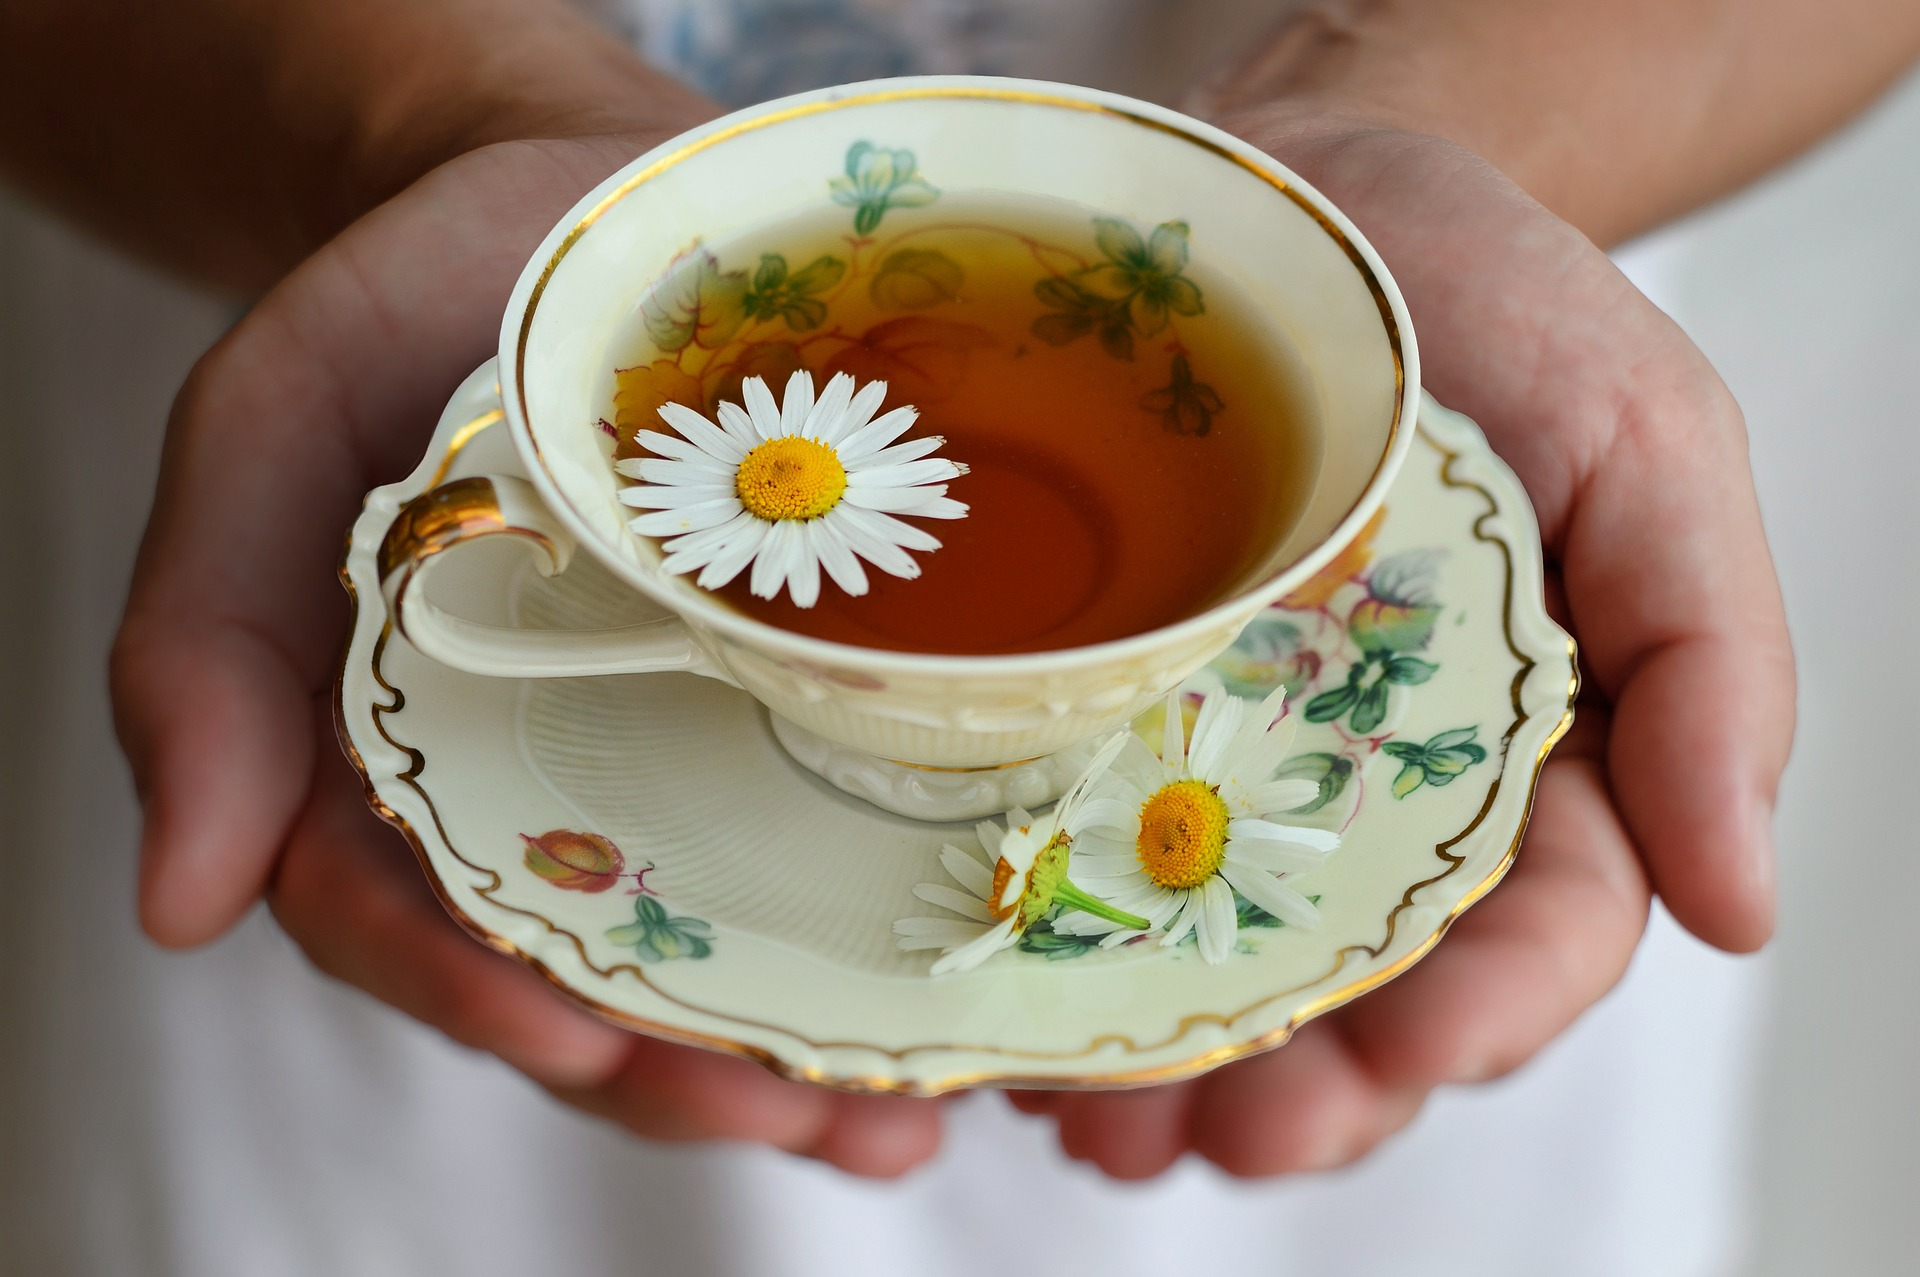 How to make chamomile tea 5 recipes from simple tea to a hot toddy chamomile tea is one of the most recognizable teas on the planet its renowned for its calming nature and beloved as a bedtime tea izmirmasajfo